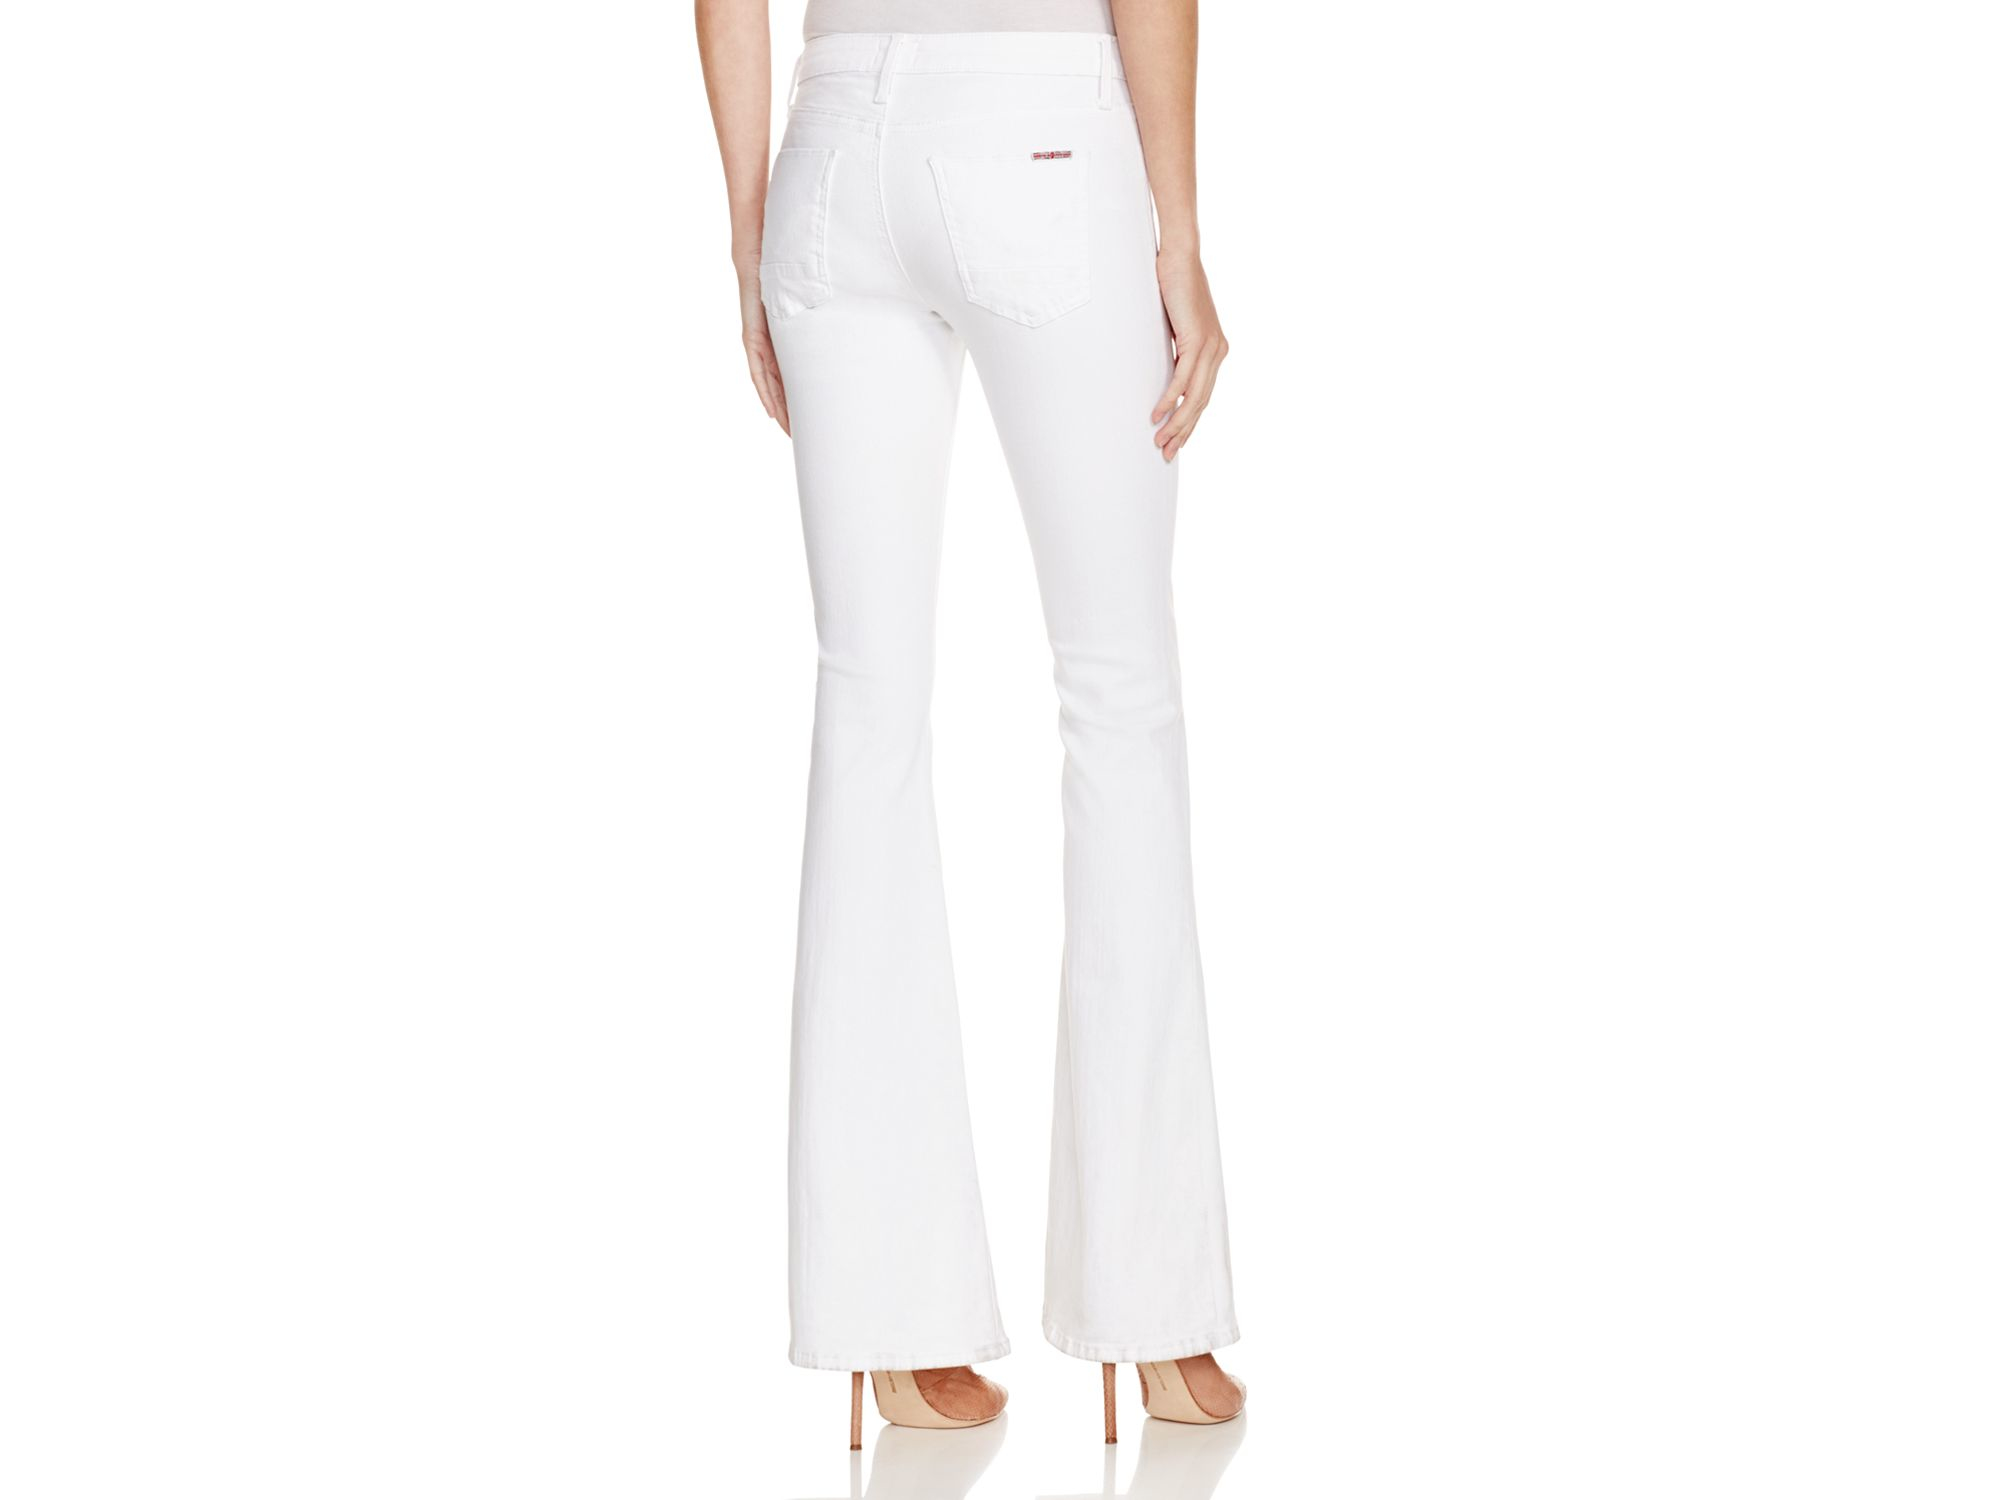 Hudson jeans Mia Petite Flare Jeans In White in White   Lyst